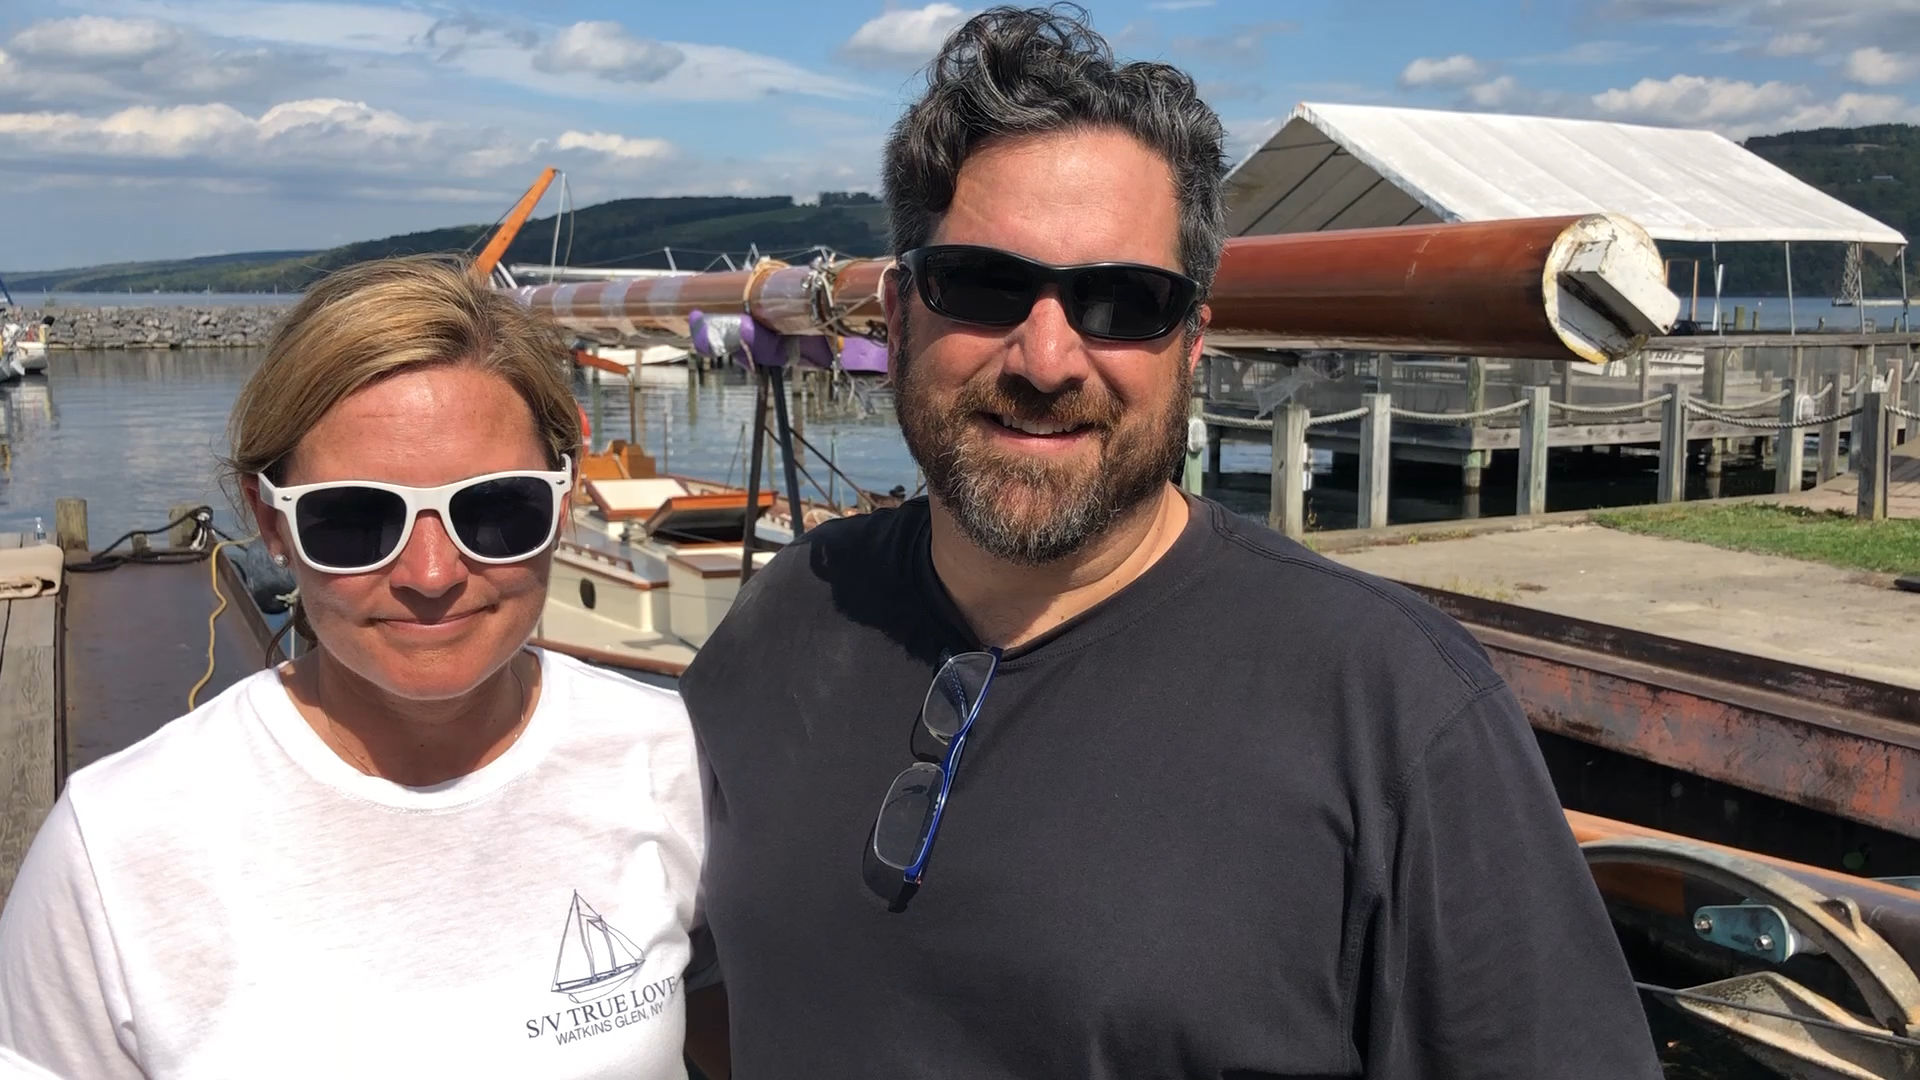 'True Love' on Seneca Lake; preps for big race nearly complete